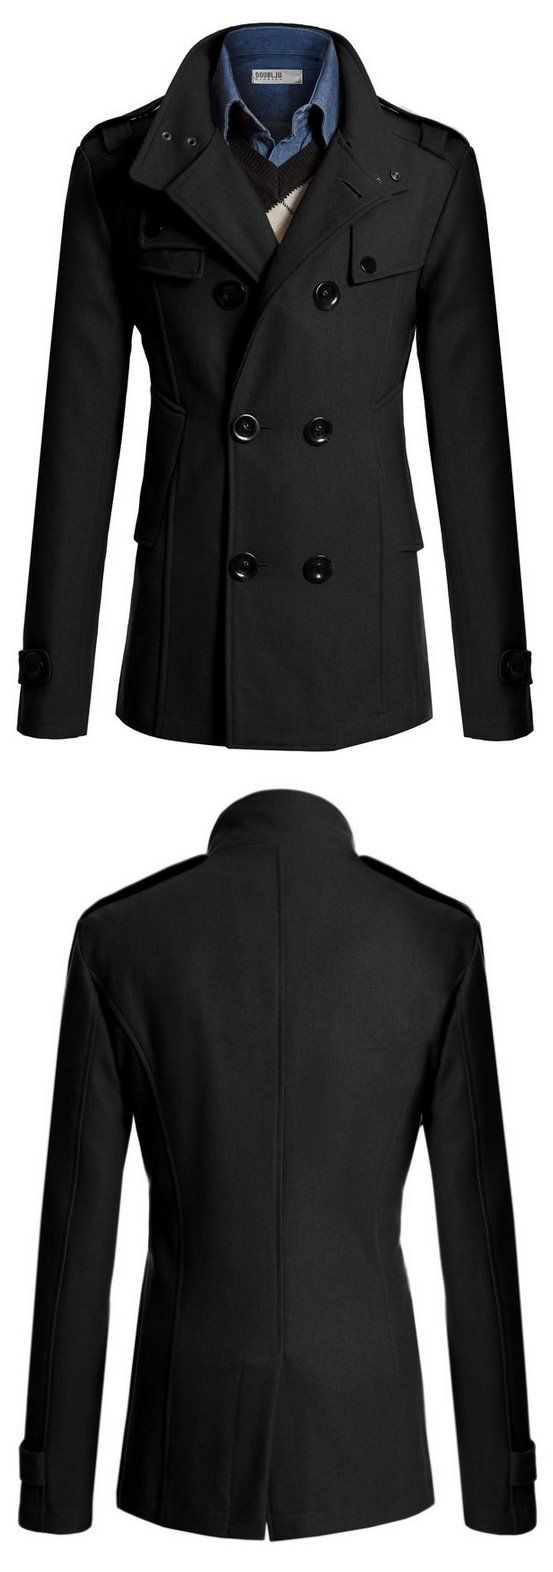 #Doublju Mens Wool Slim Double Breasted Half Trench Coat ⭐⭐⭐⭐ 785 customer reviews. This classic peacoat will ensure your slim fit style during winter season. https://twitter.com/TheMarketer2015/status/670183117827776512